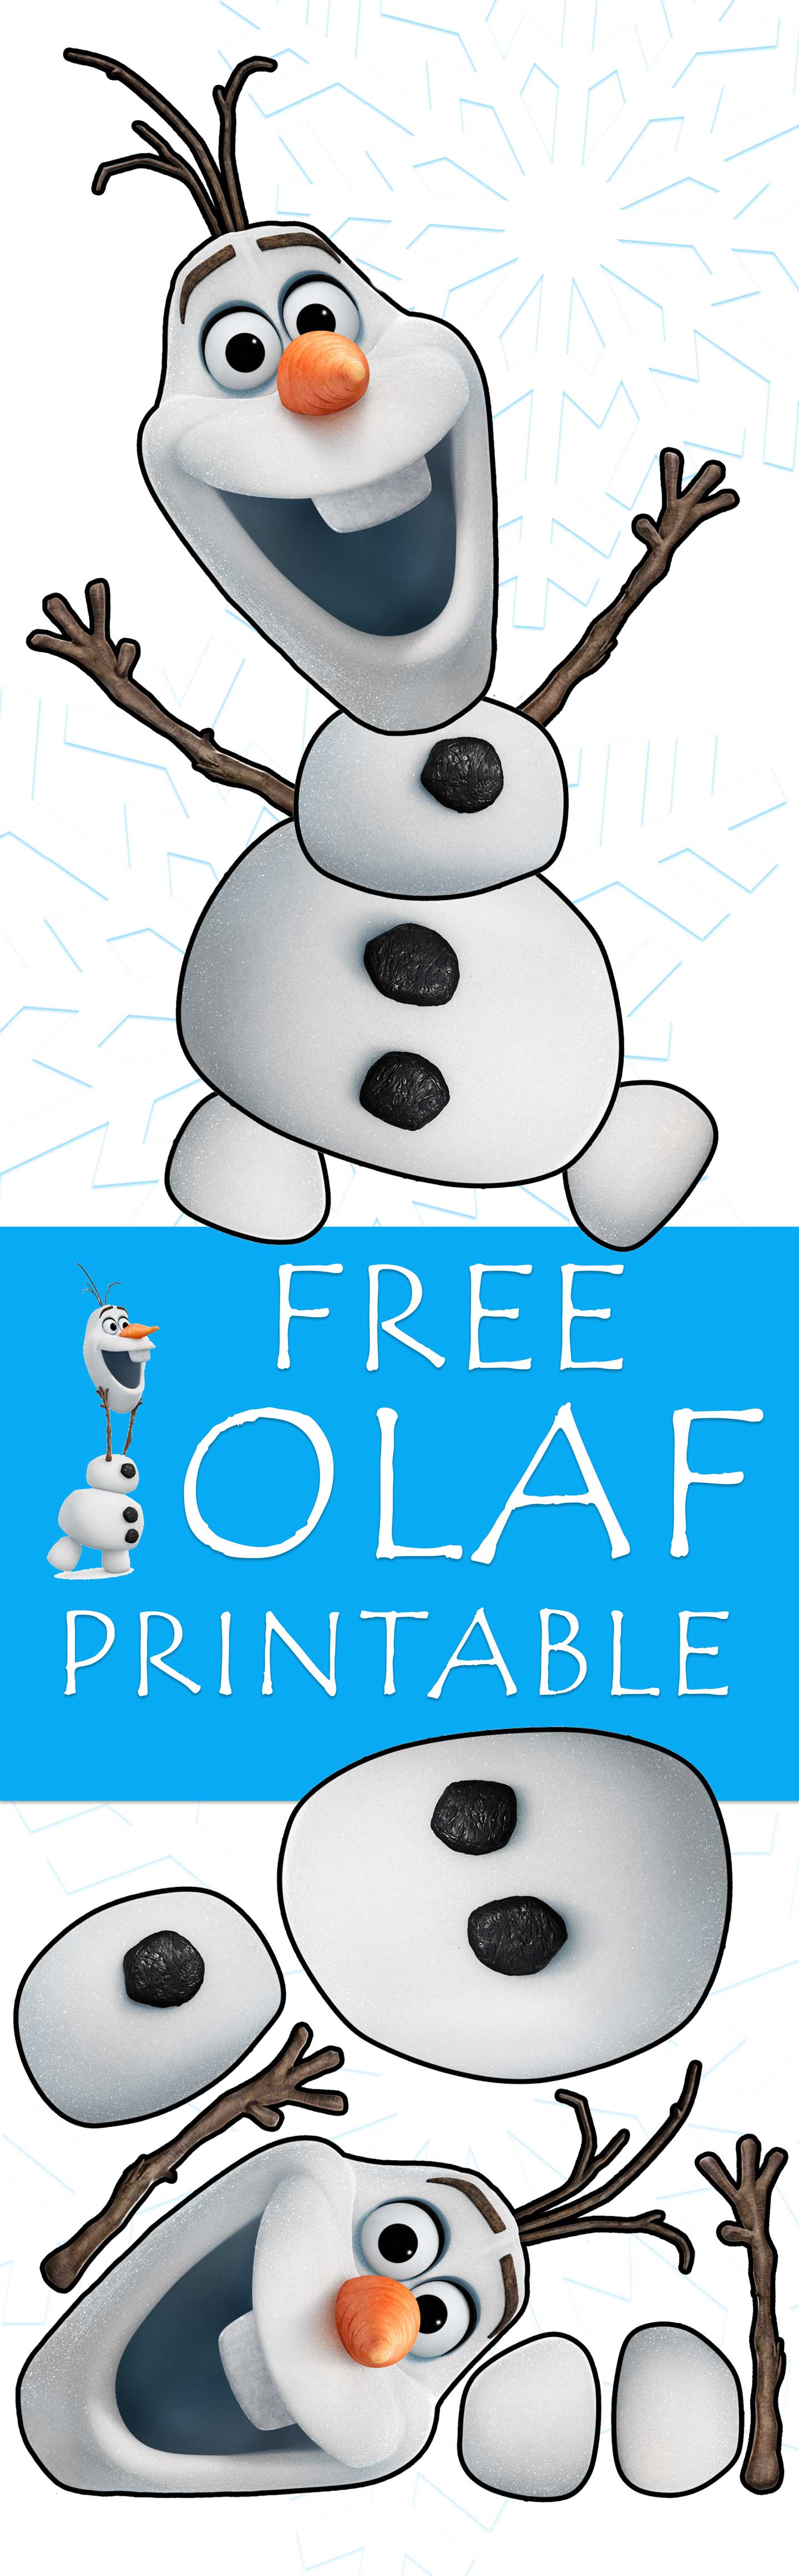 Obsessed image within olaf printable